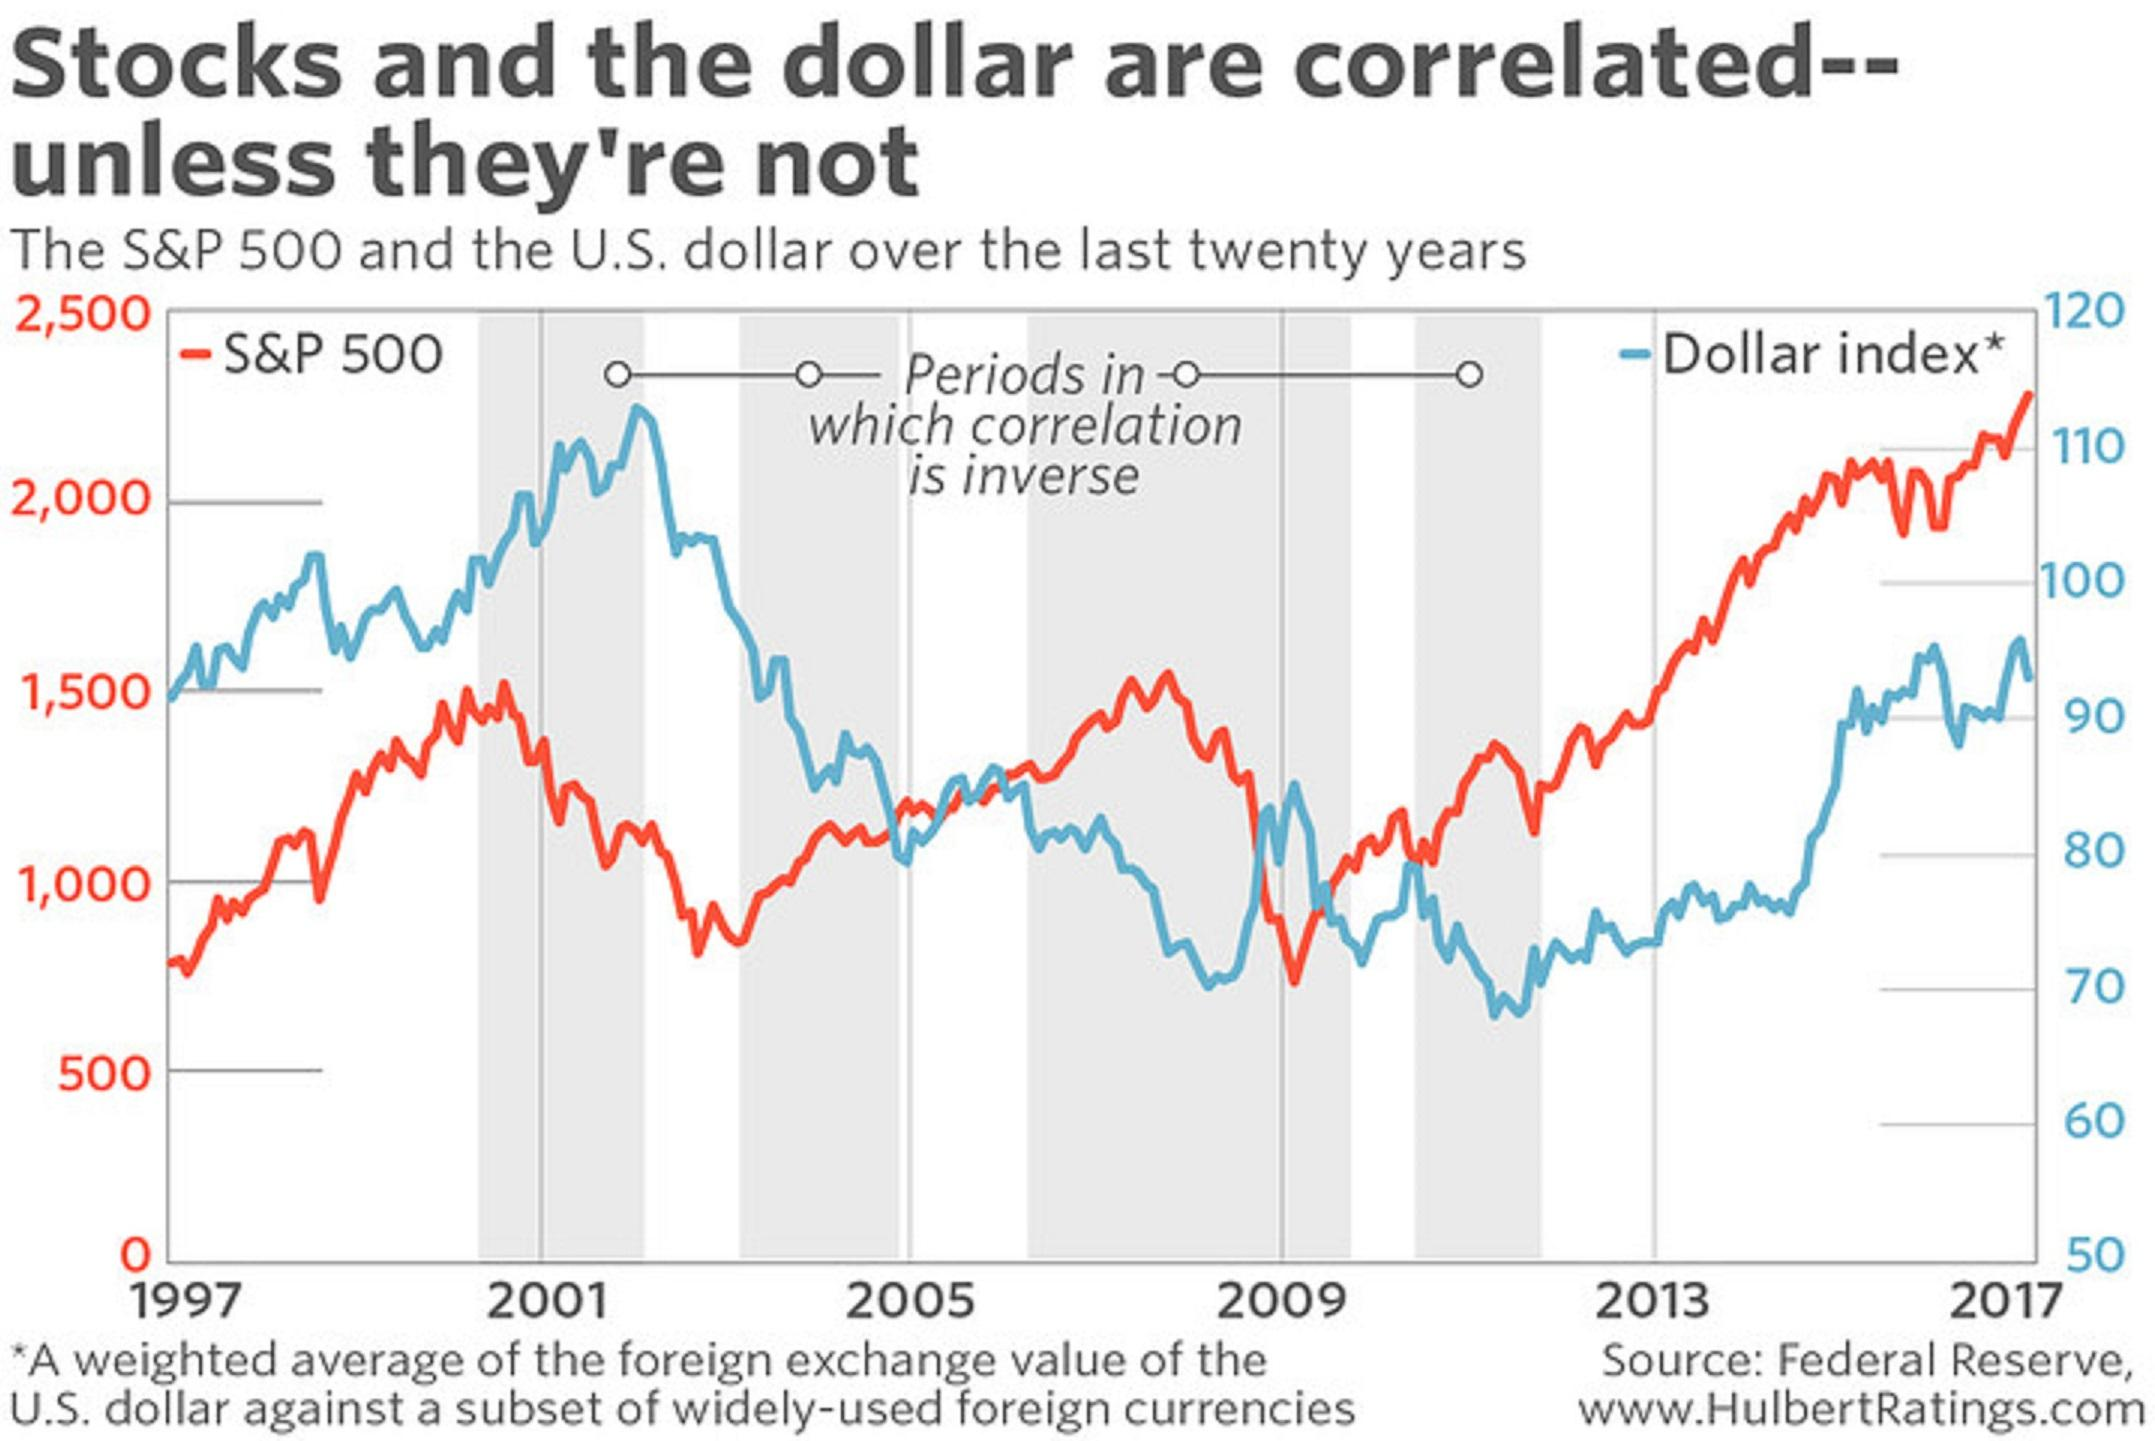 The Shaded Bo Show Periods In Which Like This Year Dollar Stocks Correlation Has Been Inverse